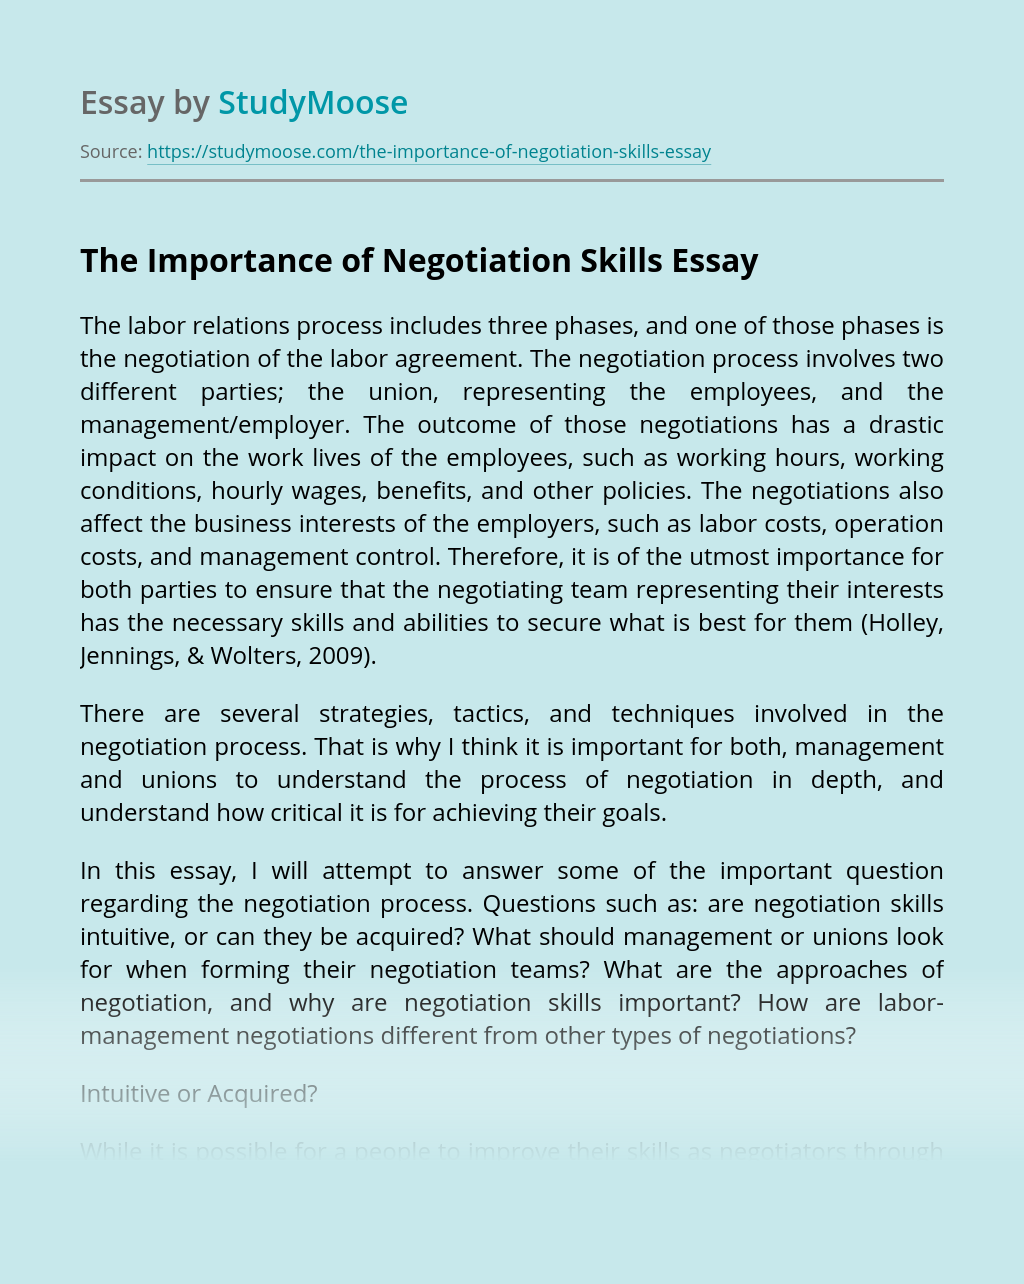 The Importance of Negotiation Skills